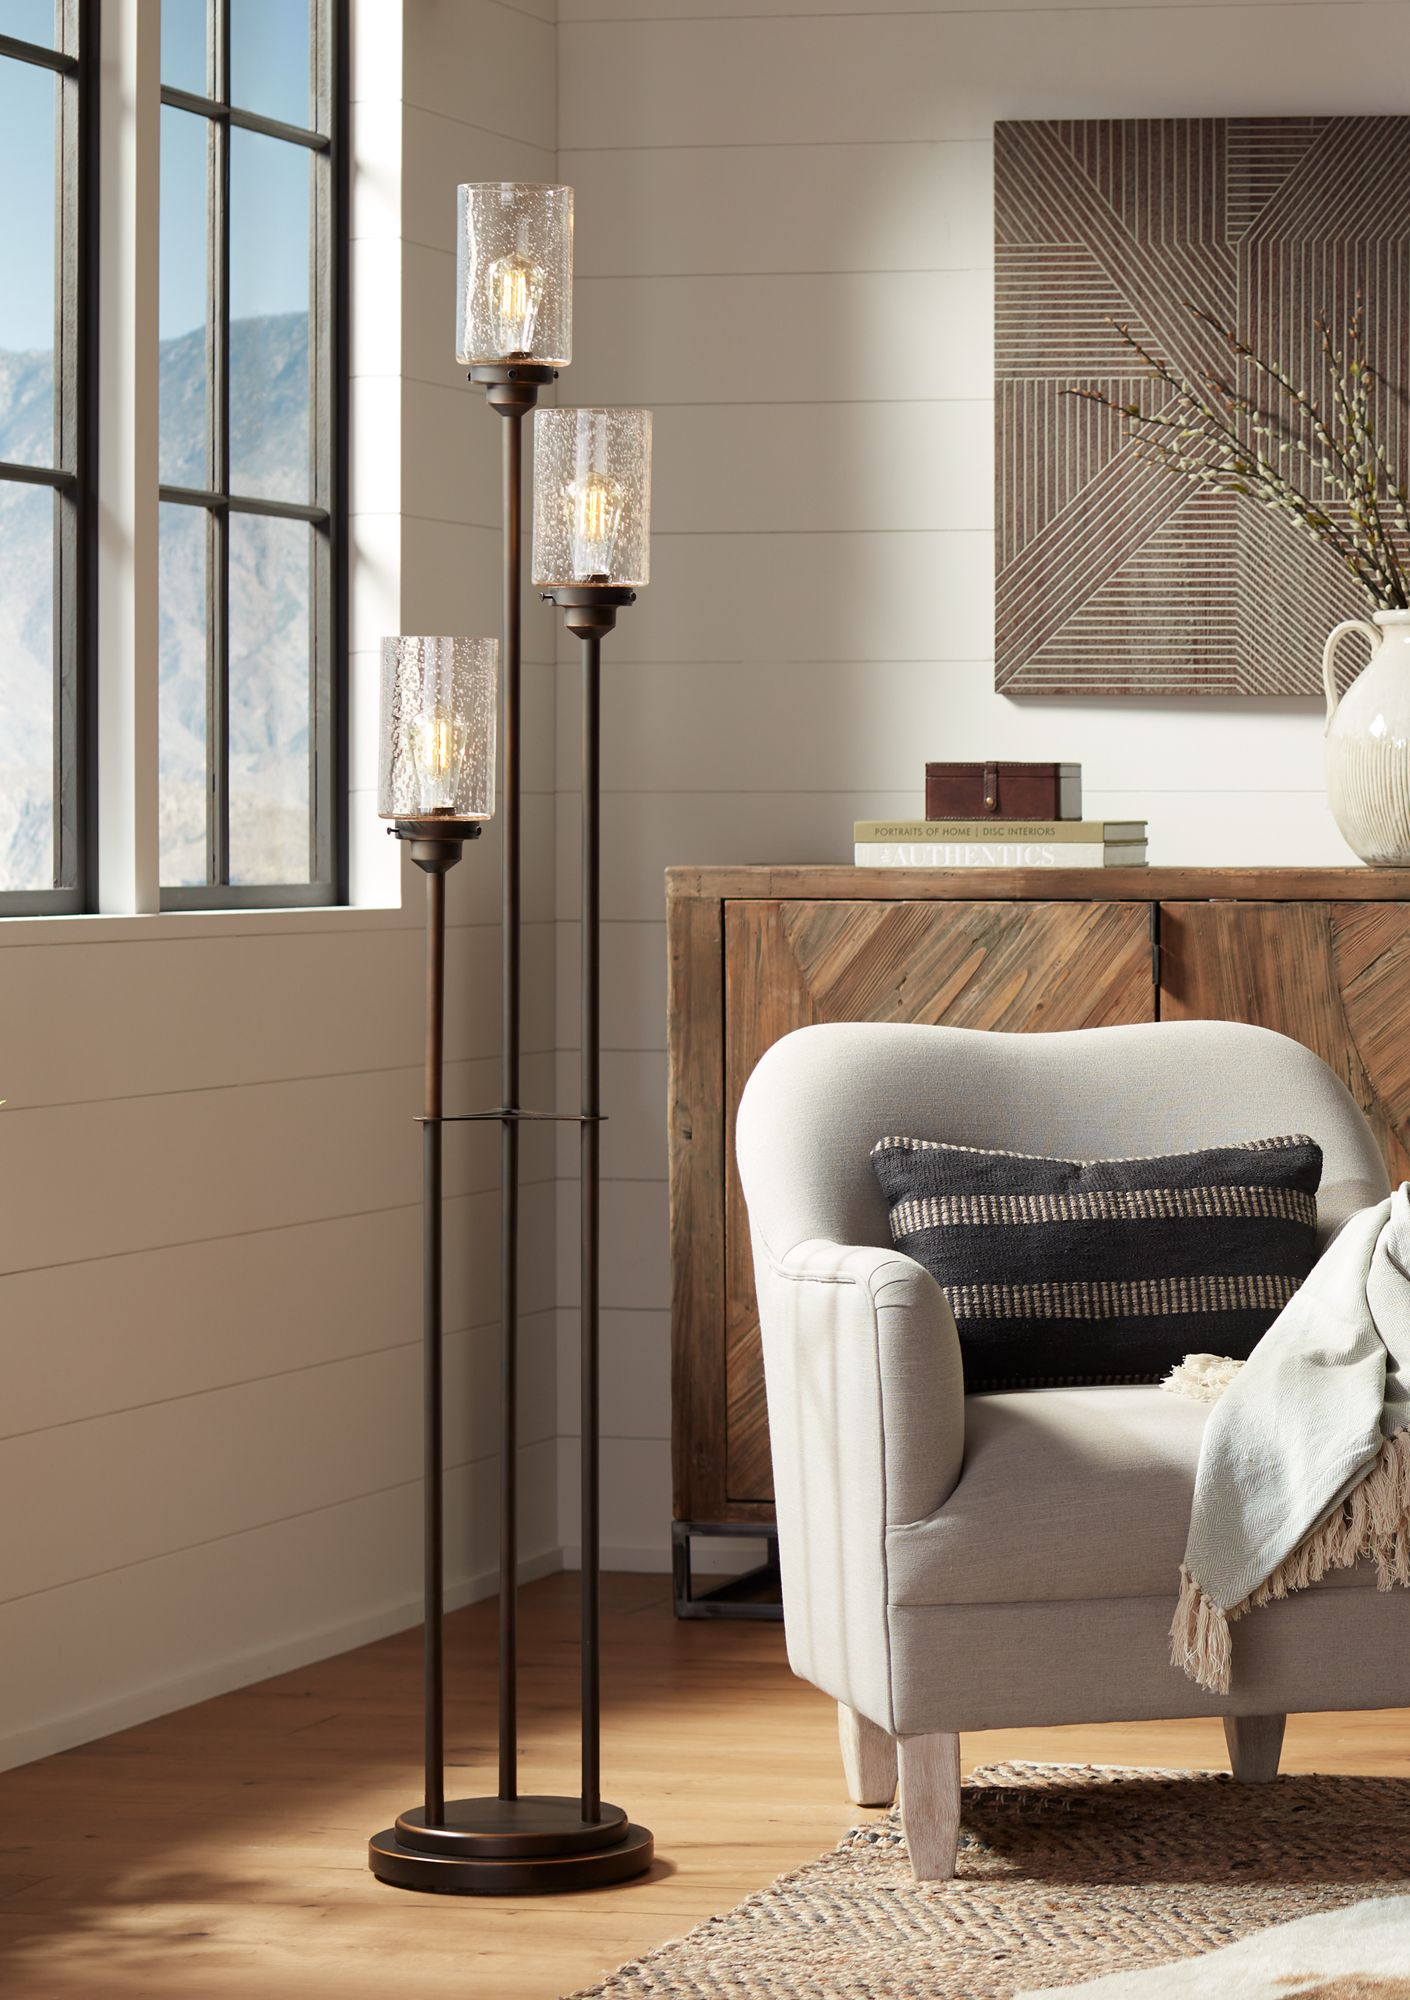 Libby Oiled Bronze 3 Light Seeded Glass Floor Lamp   #2H197 | Lamps Plus